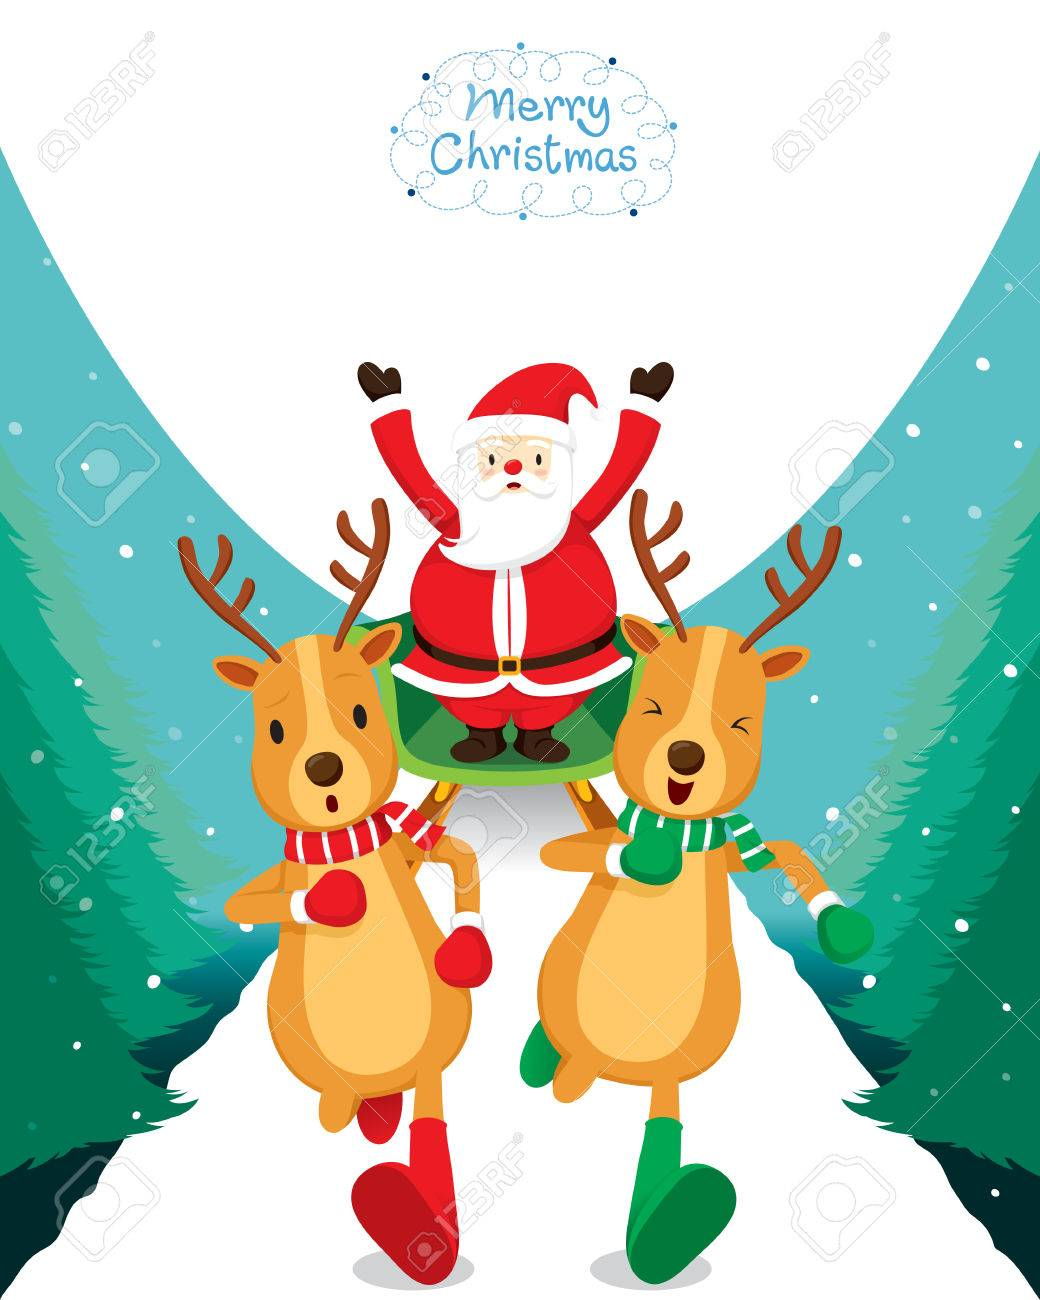 Reindeer Running With Santa Claus, Merry Christmas, Xmas, Happy..